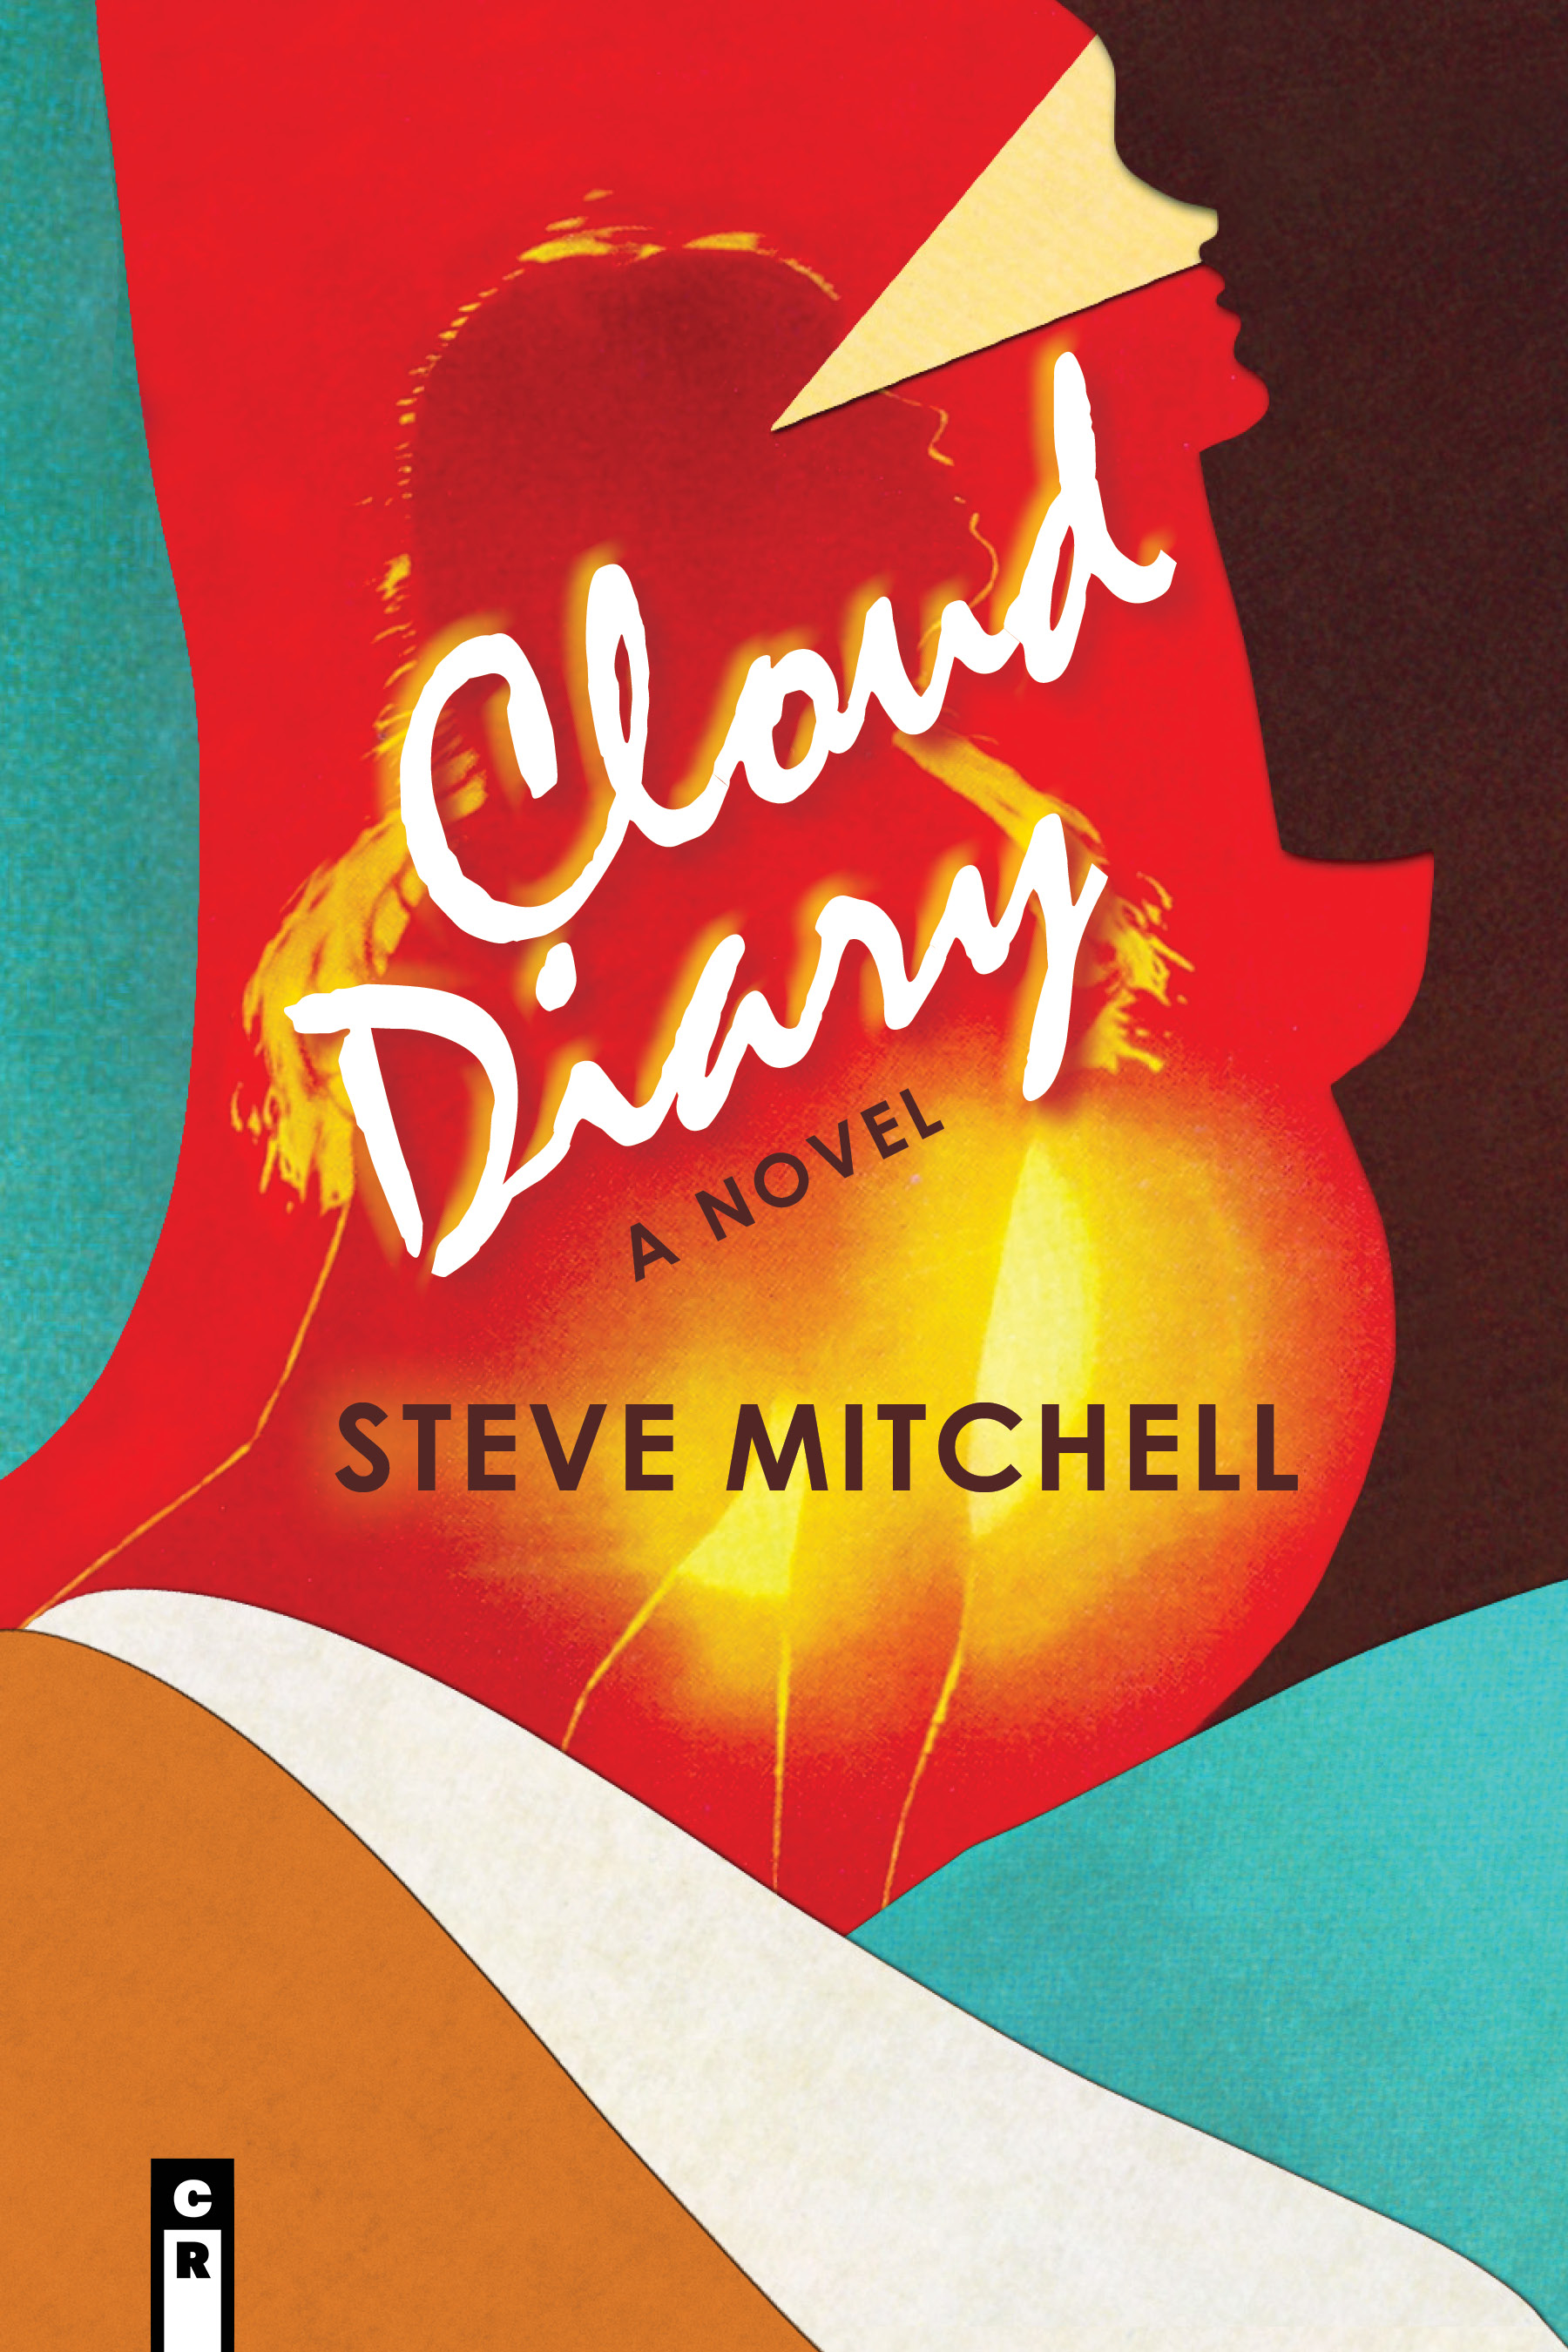 huge discount 0fae0 3a2f9 Hats Off! to Steve Mitchell whose debut novel, Cloud Diary, will be  published in March by C R Press.